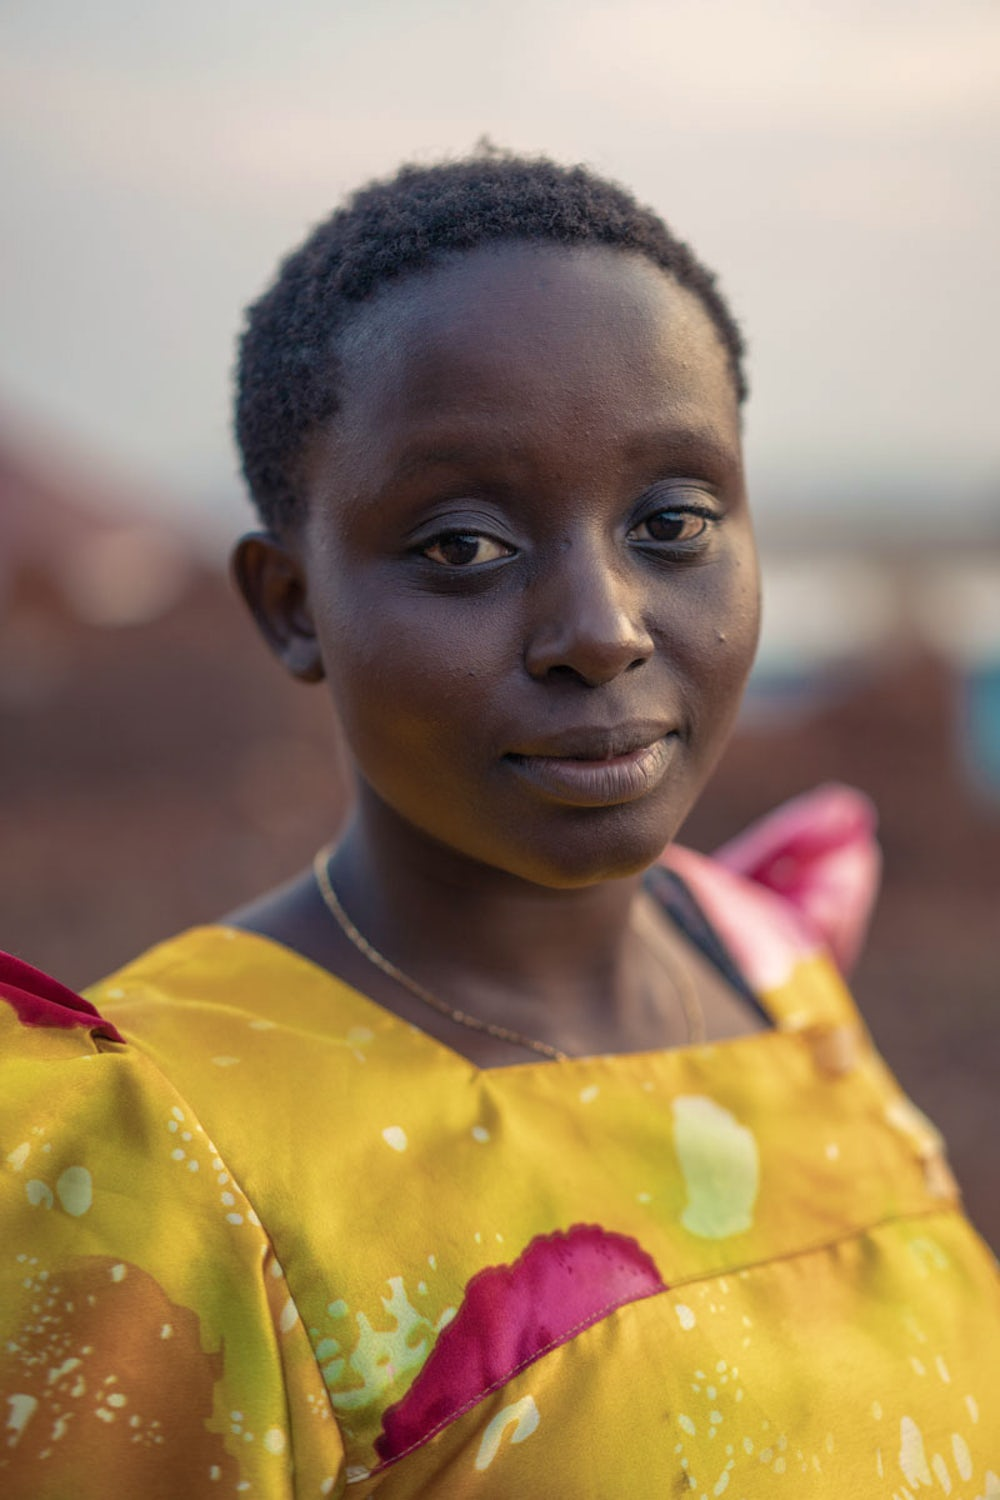 A portrait of a young woman in Uganda.